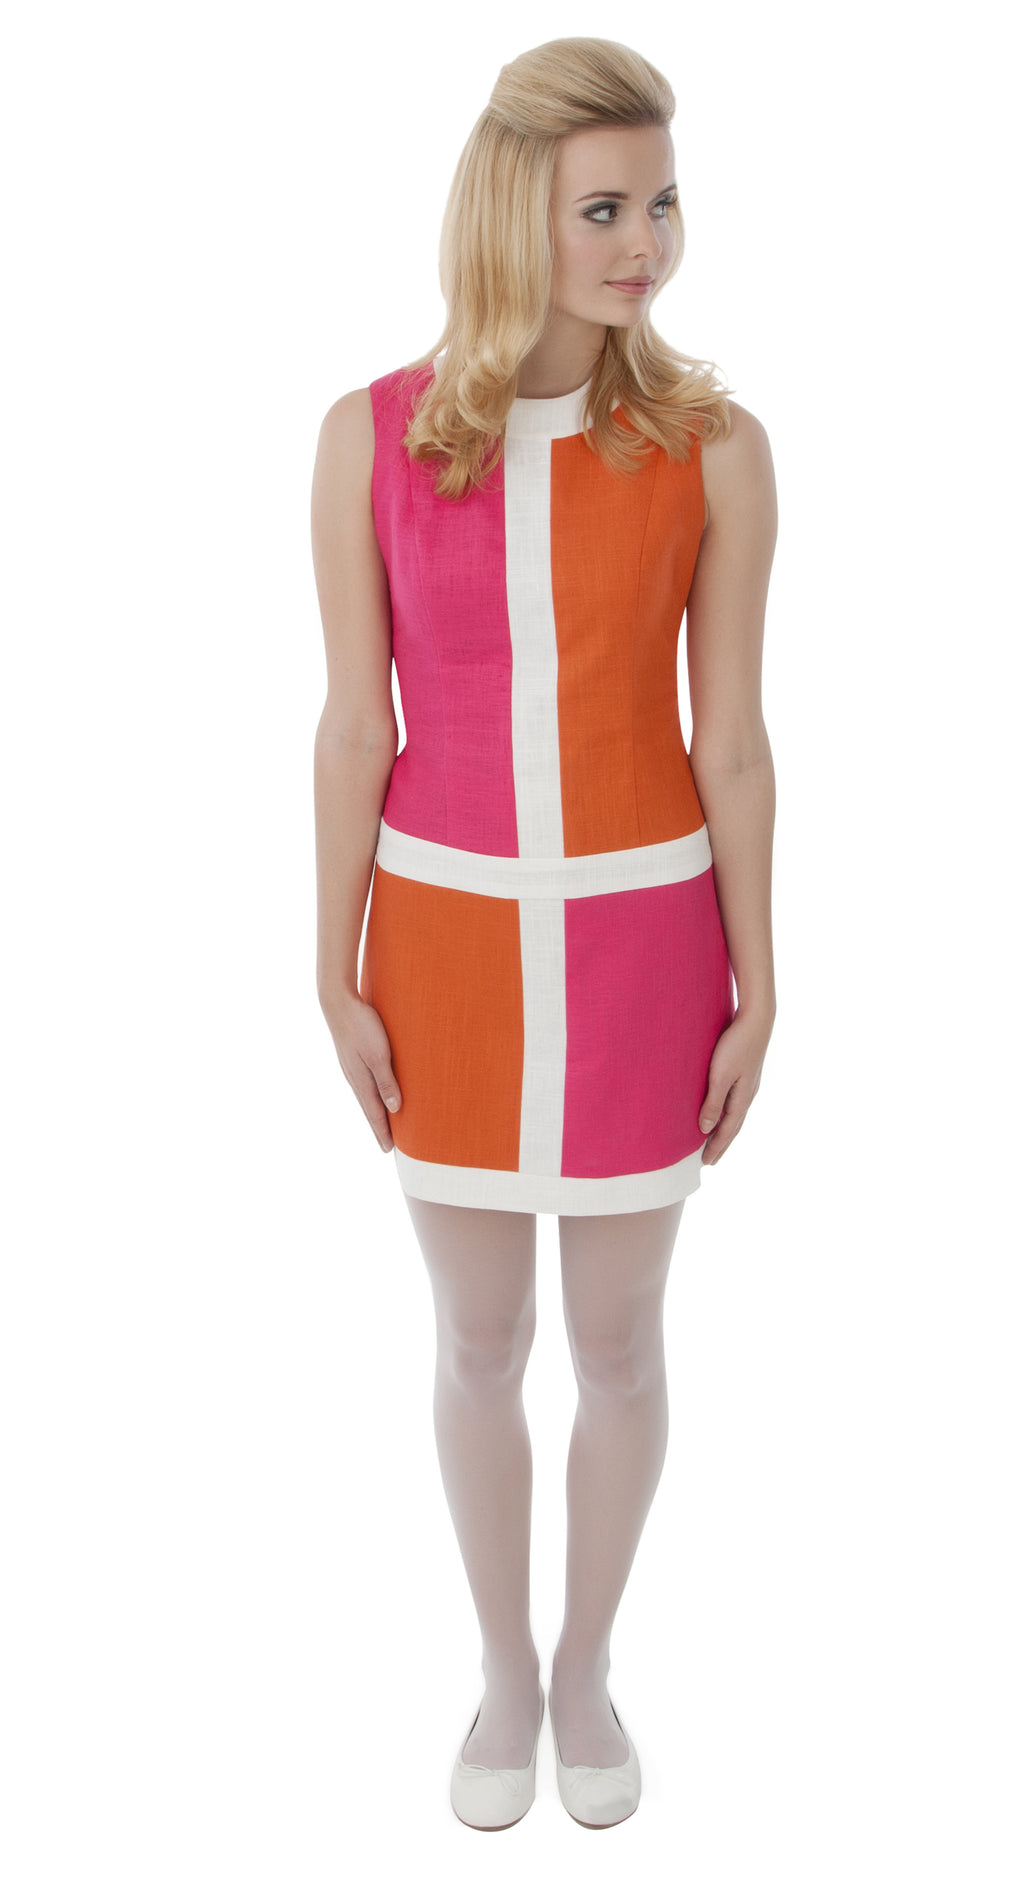 PINK/BURNT ORANGE MONDRIAN STYLE DRESS